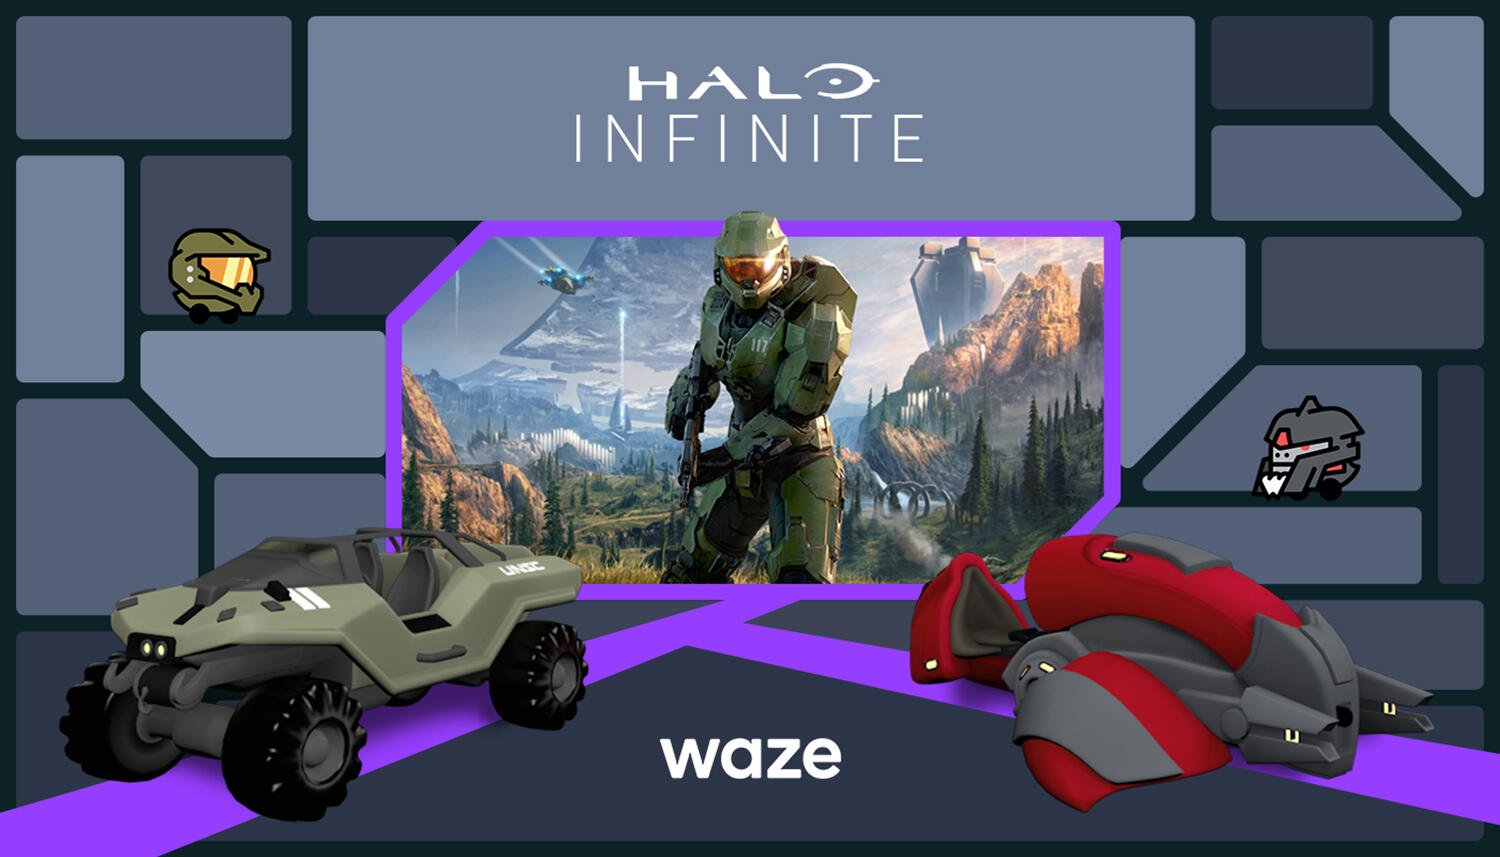 Waze launches Halo voice guidance, graphics to celebrate series' 20th anniversary     - Roadshow